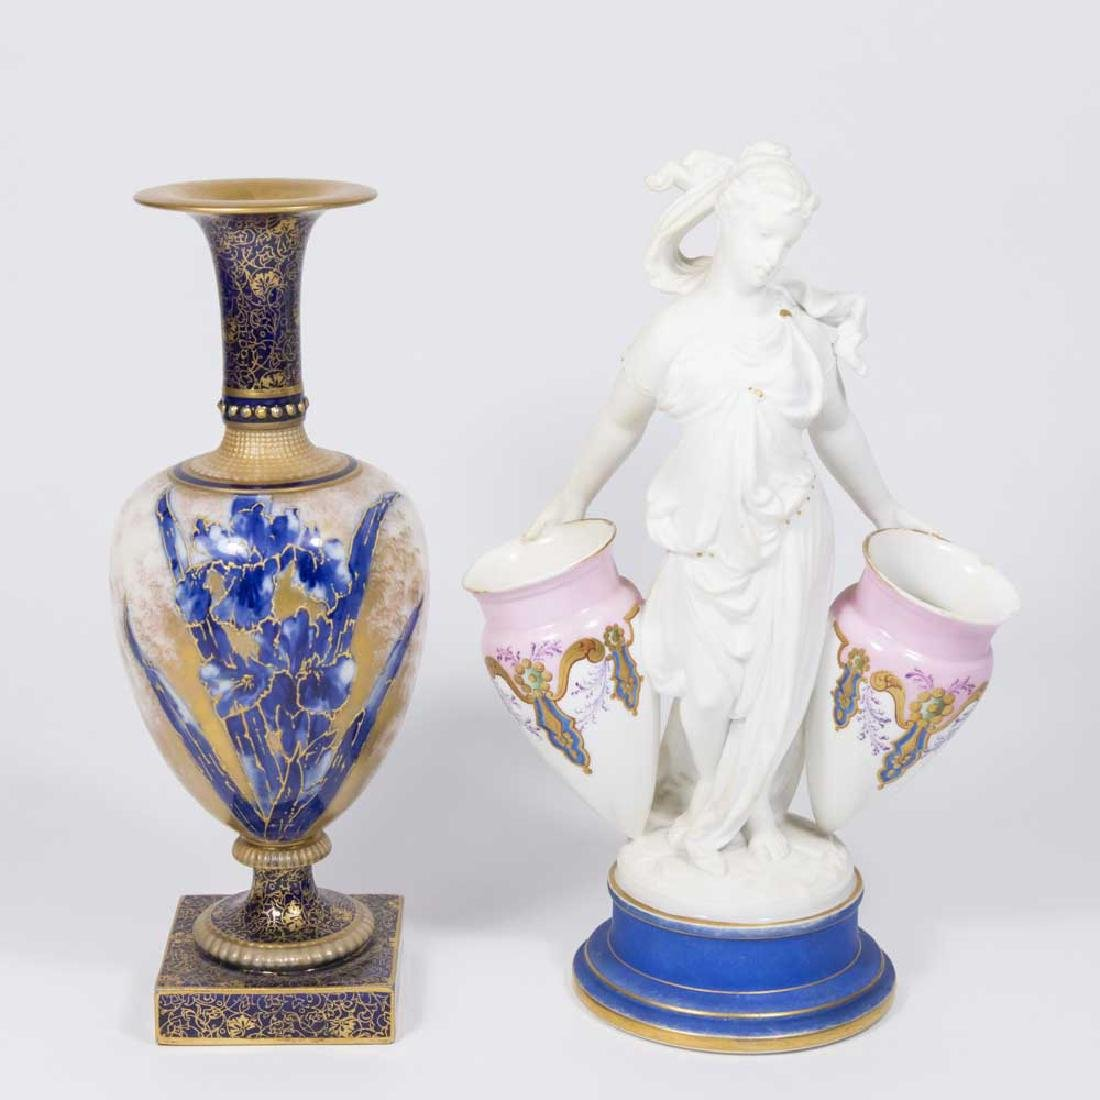 Doulton Handpainted Vase & Classical Woman